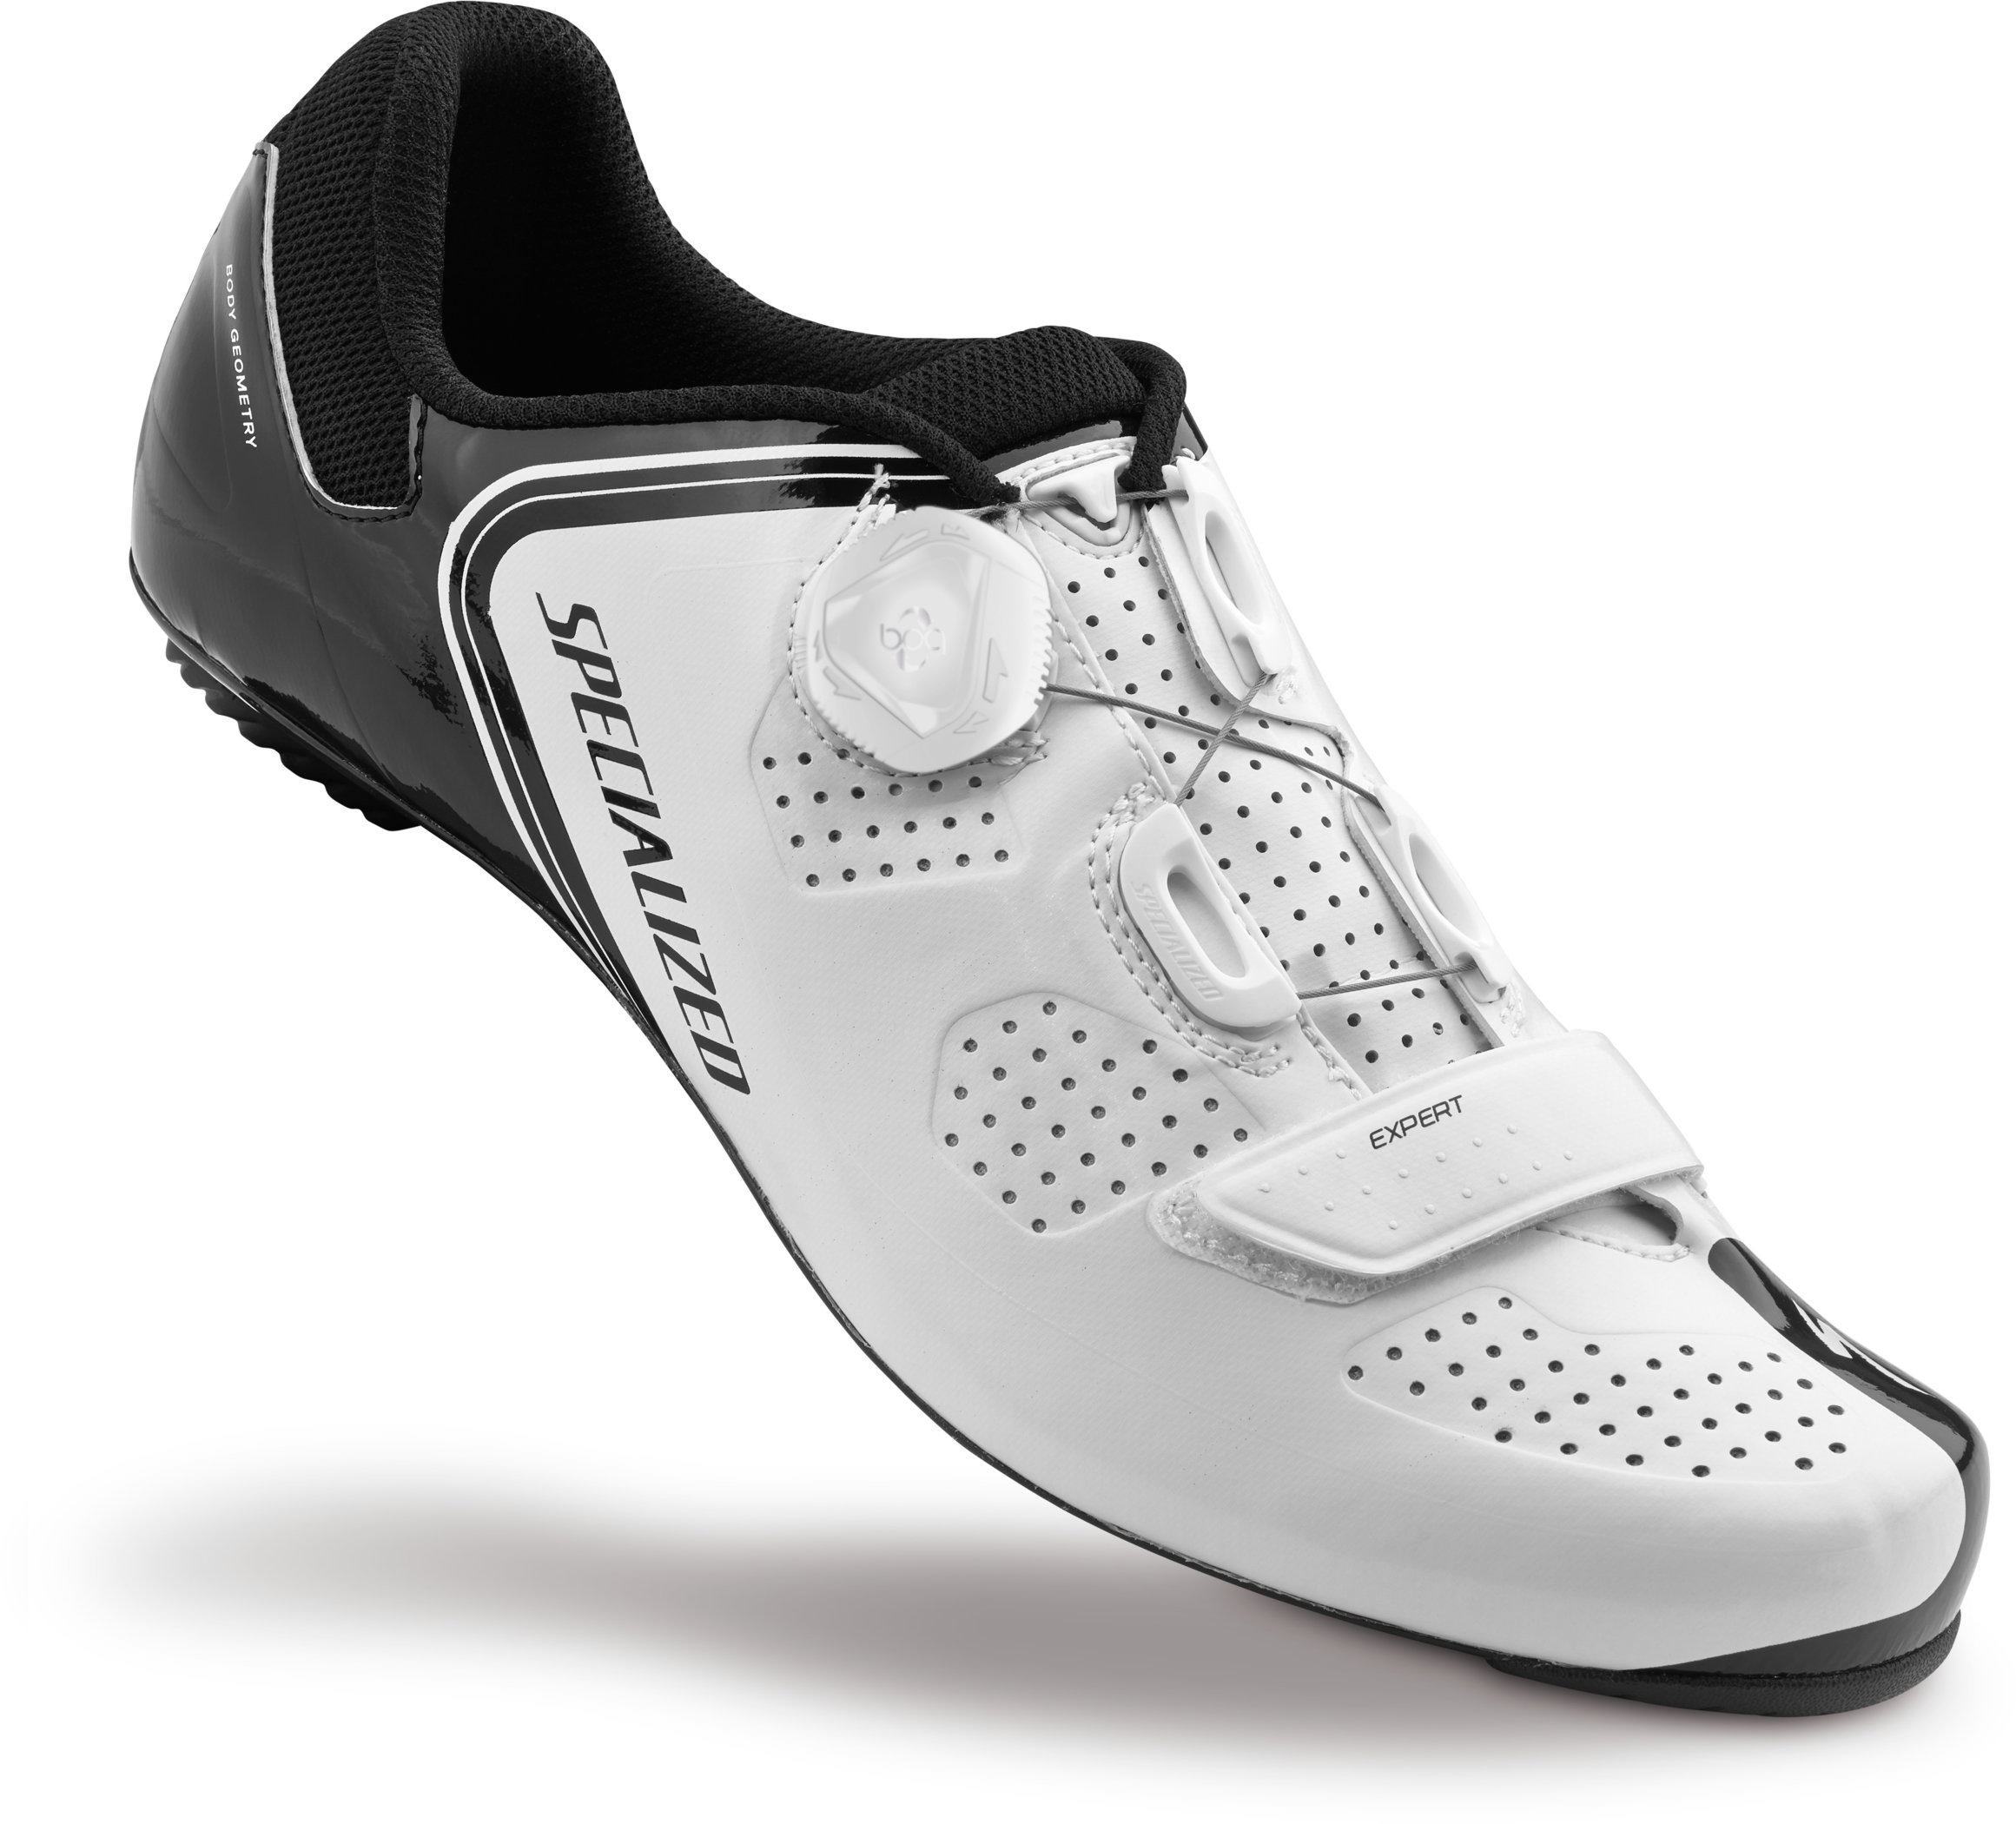 SPECIALIZED EXPERT RD SHOE WHT/BLK 49/14.5 - Bikedreams & Dustbikes